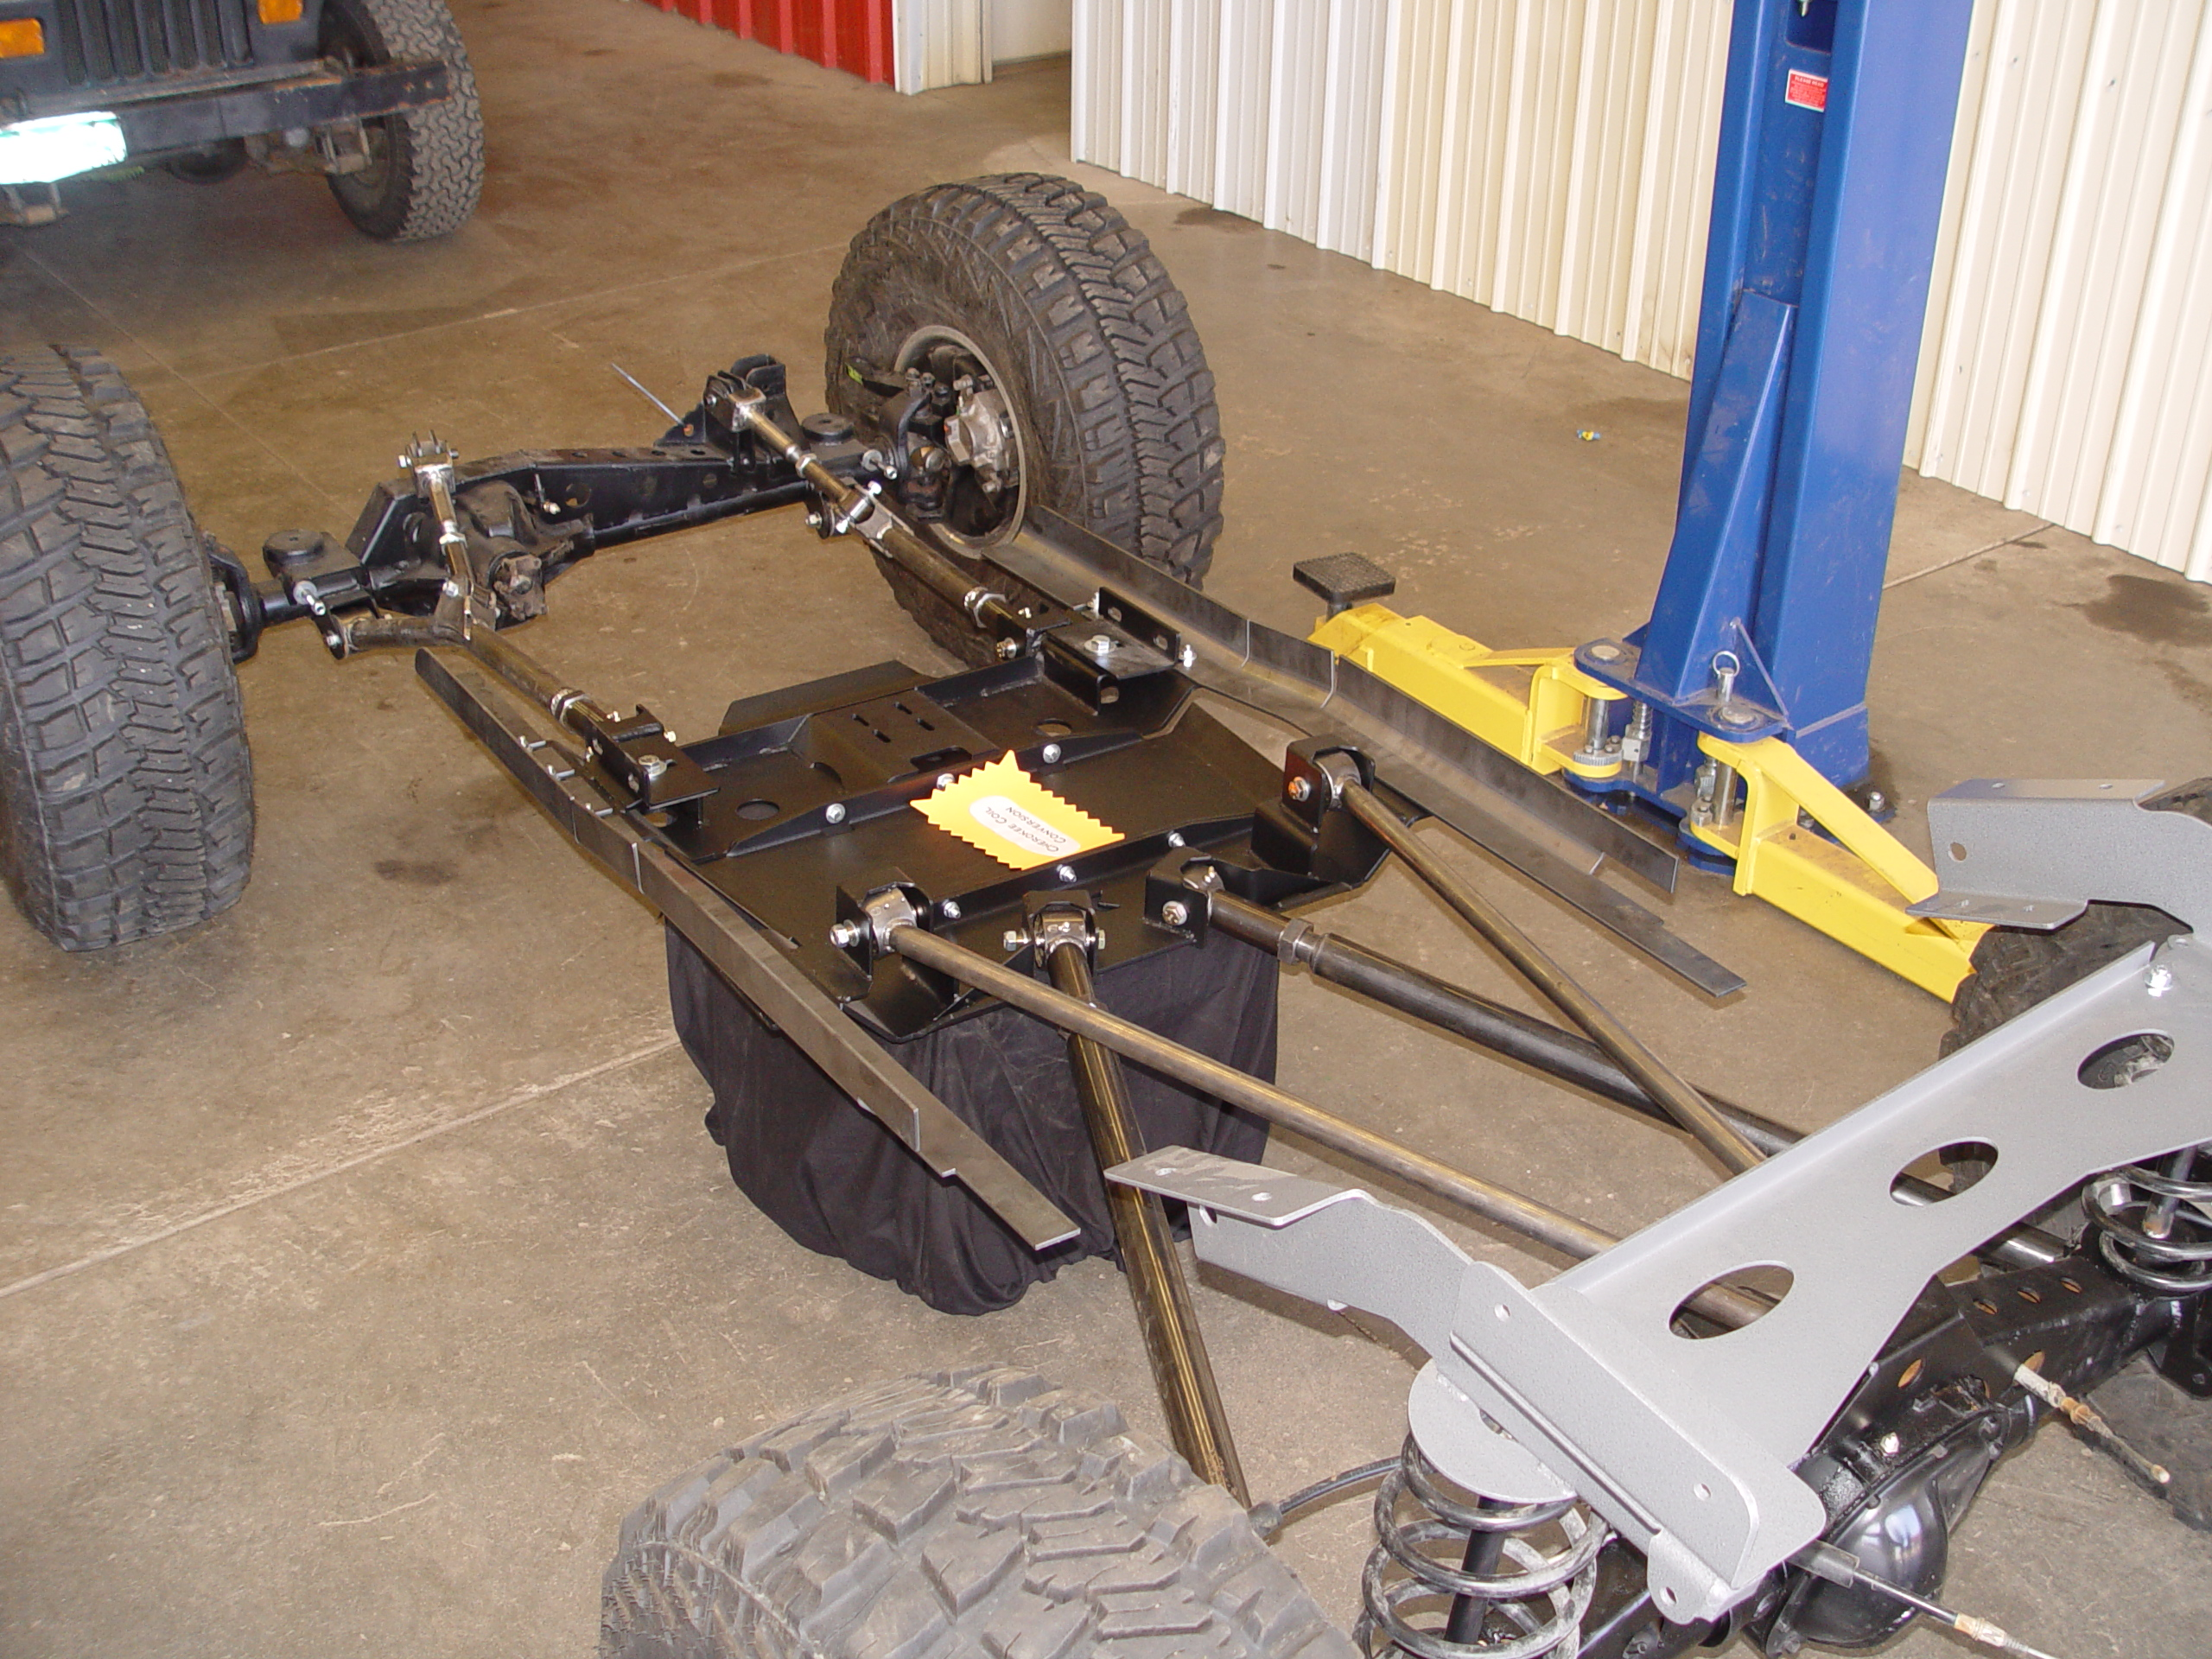 xj long arm upgrade coil conversion 84-01 cherokee tnt customs